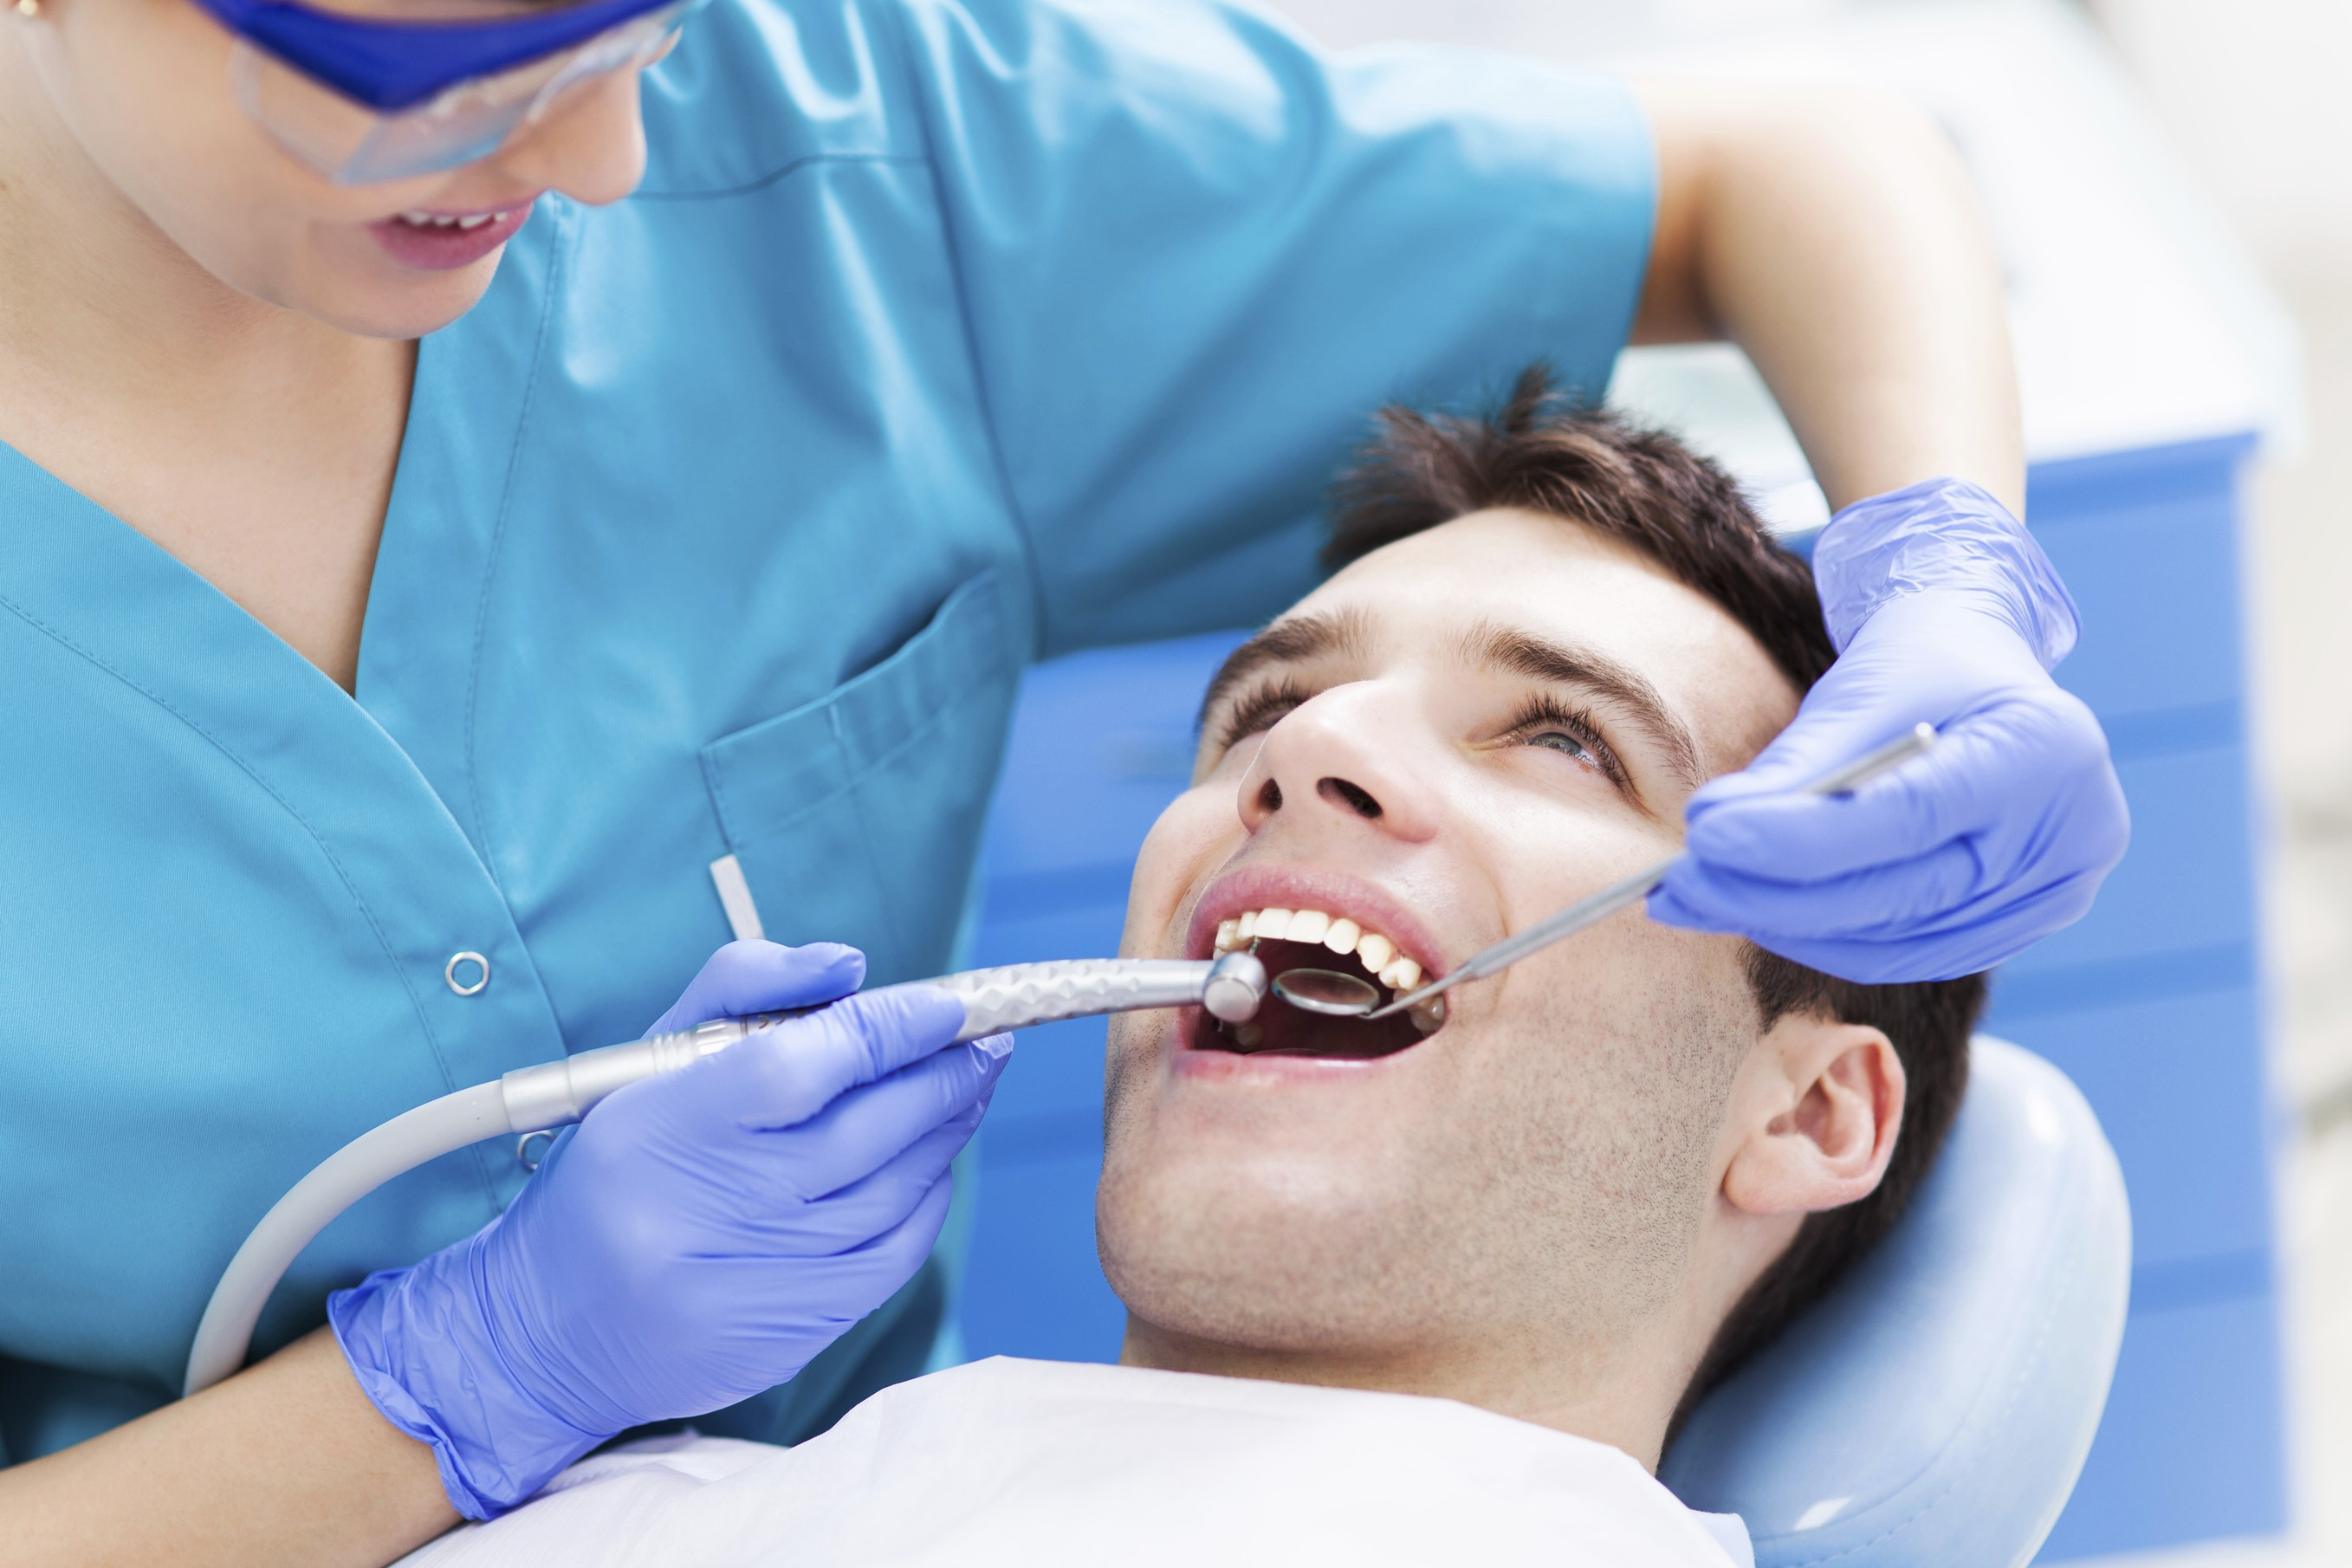 Tackle Your Anxiety or Fear of The Dentist With Sedation Dentistry